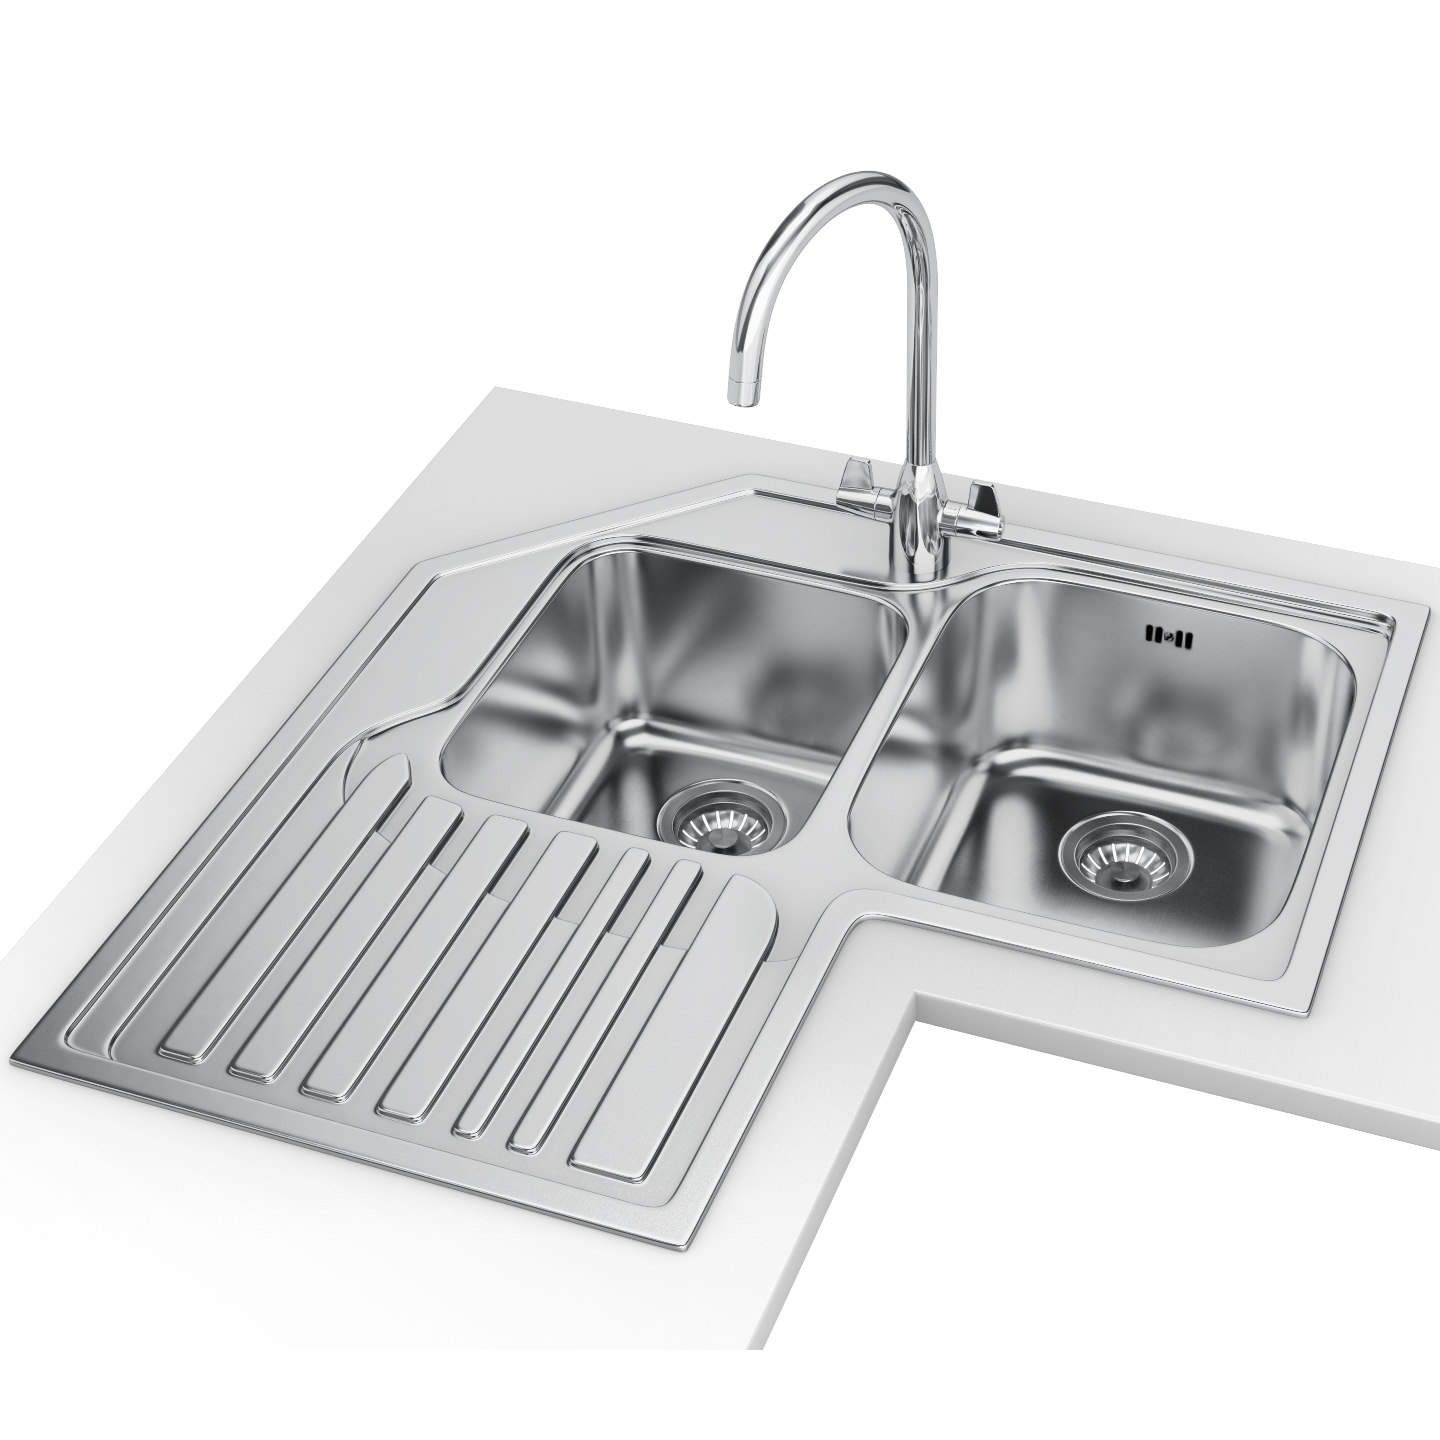 Franke Studio Designer Pack Stx 621 E Stainless Steel Sink And Tap 1010001045